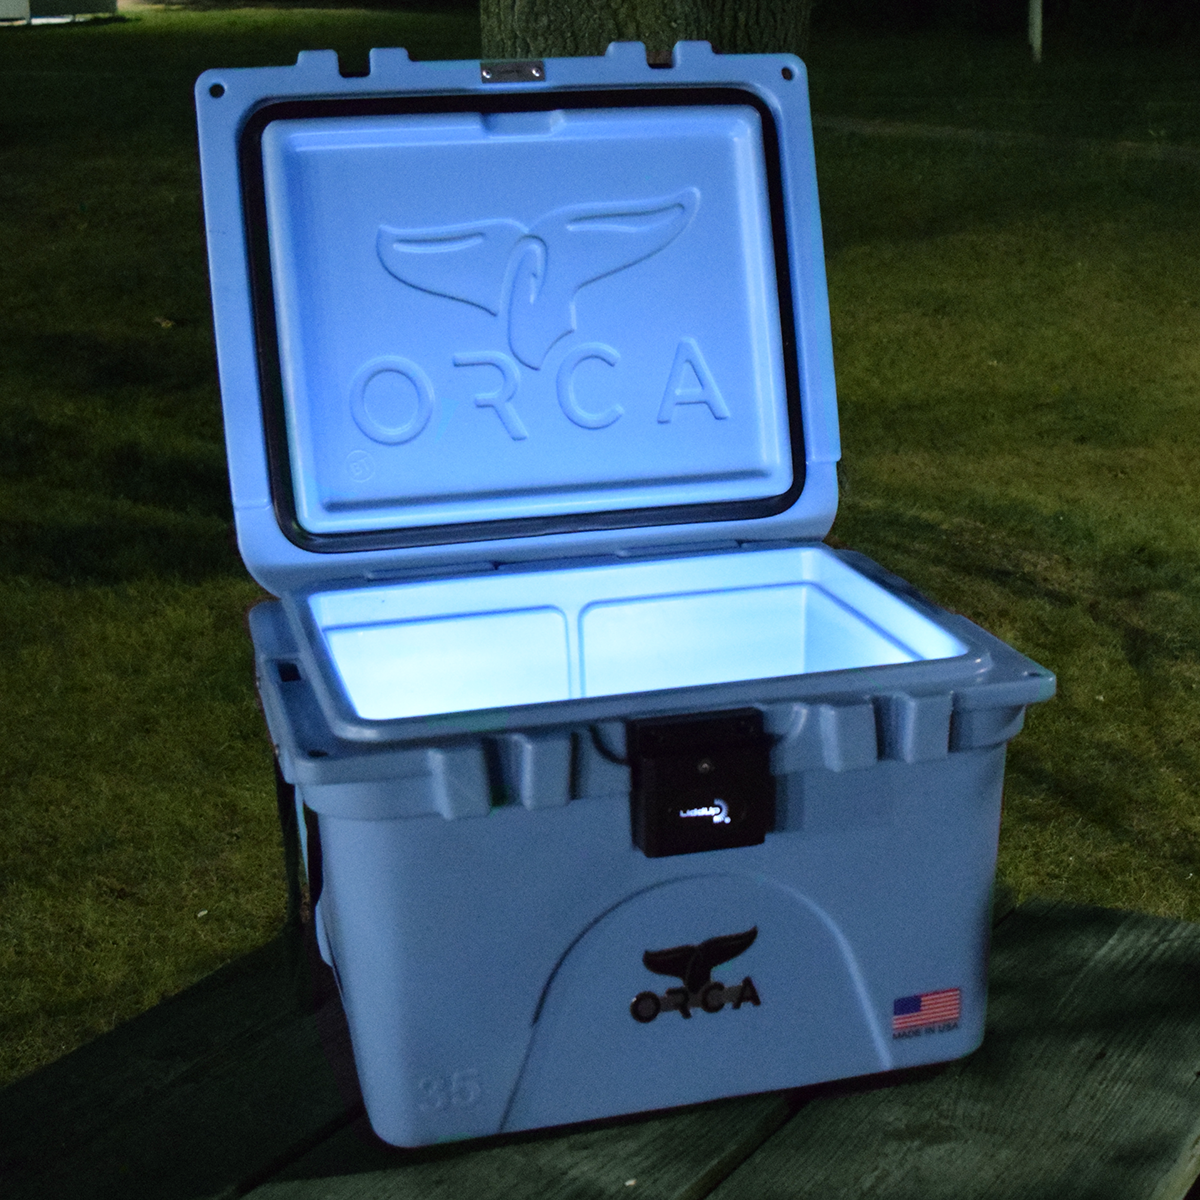 The Perfect Cooler For Outdoor Tailgates Picnics And Barbecues Liddup S Patented Led Lighting System Will Keep The Party Orca Cooler Box Led Lighting System